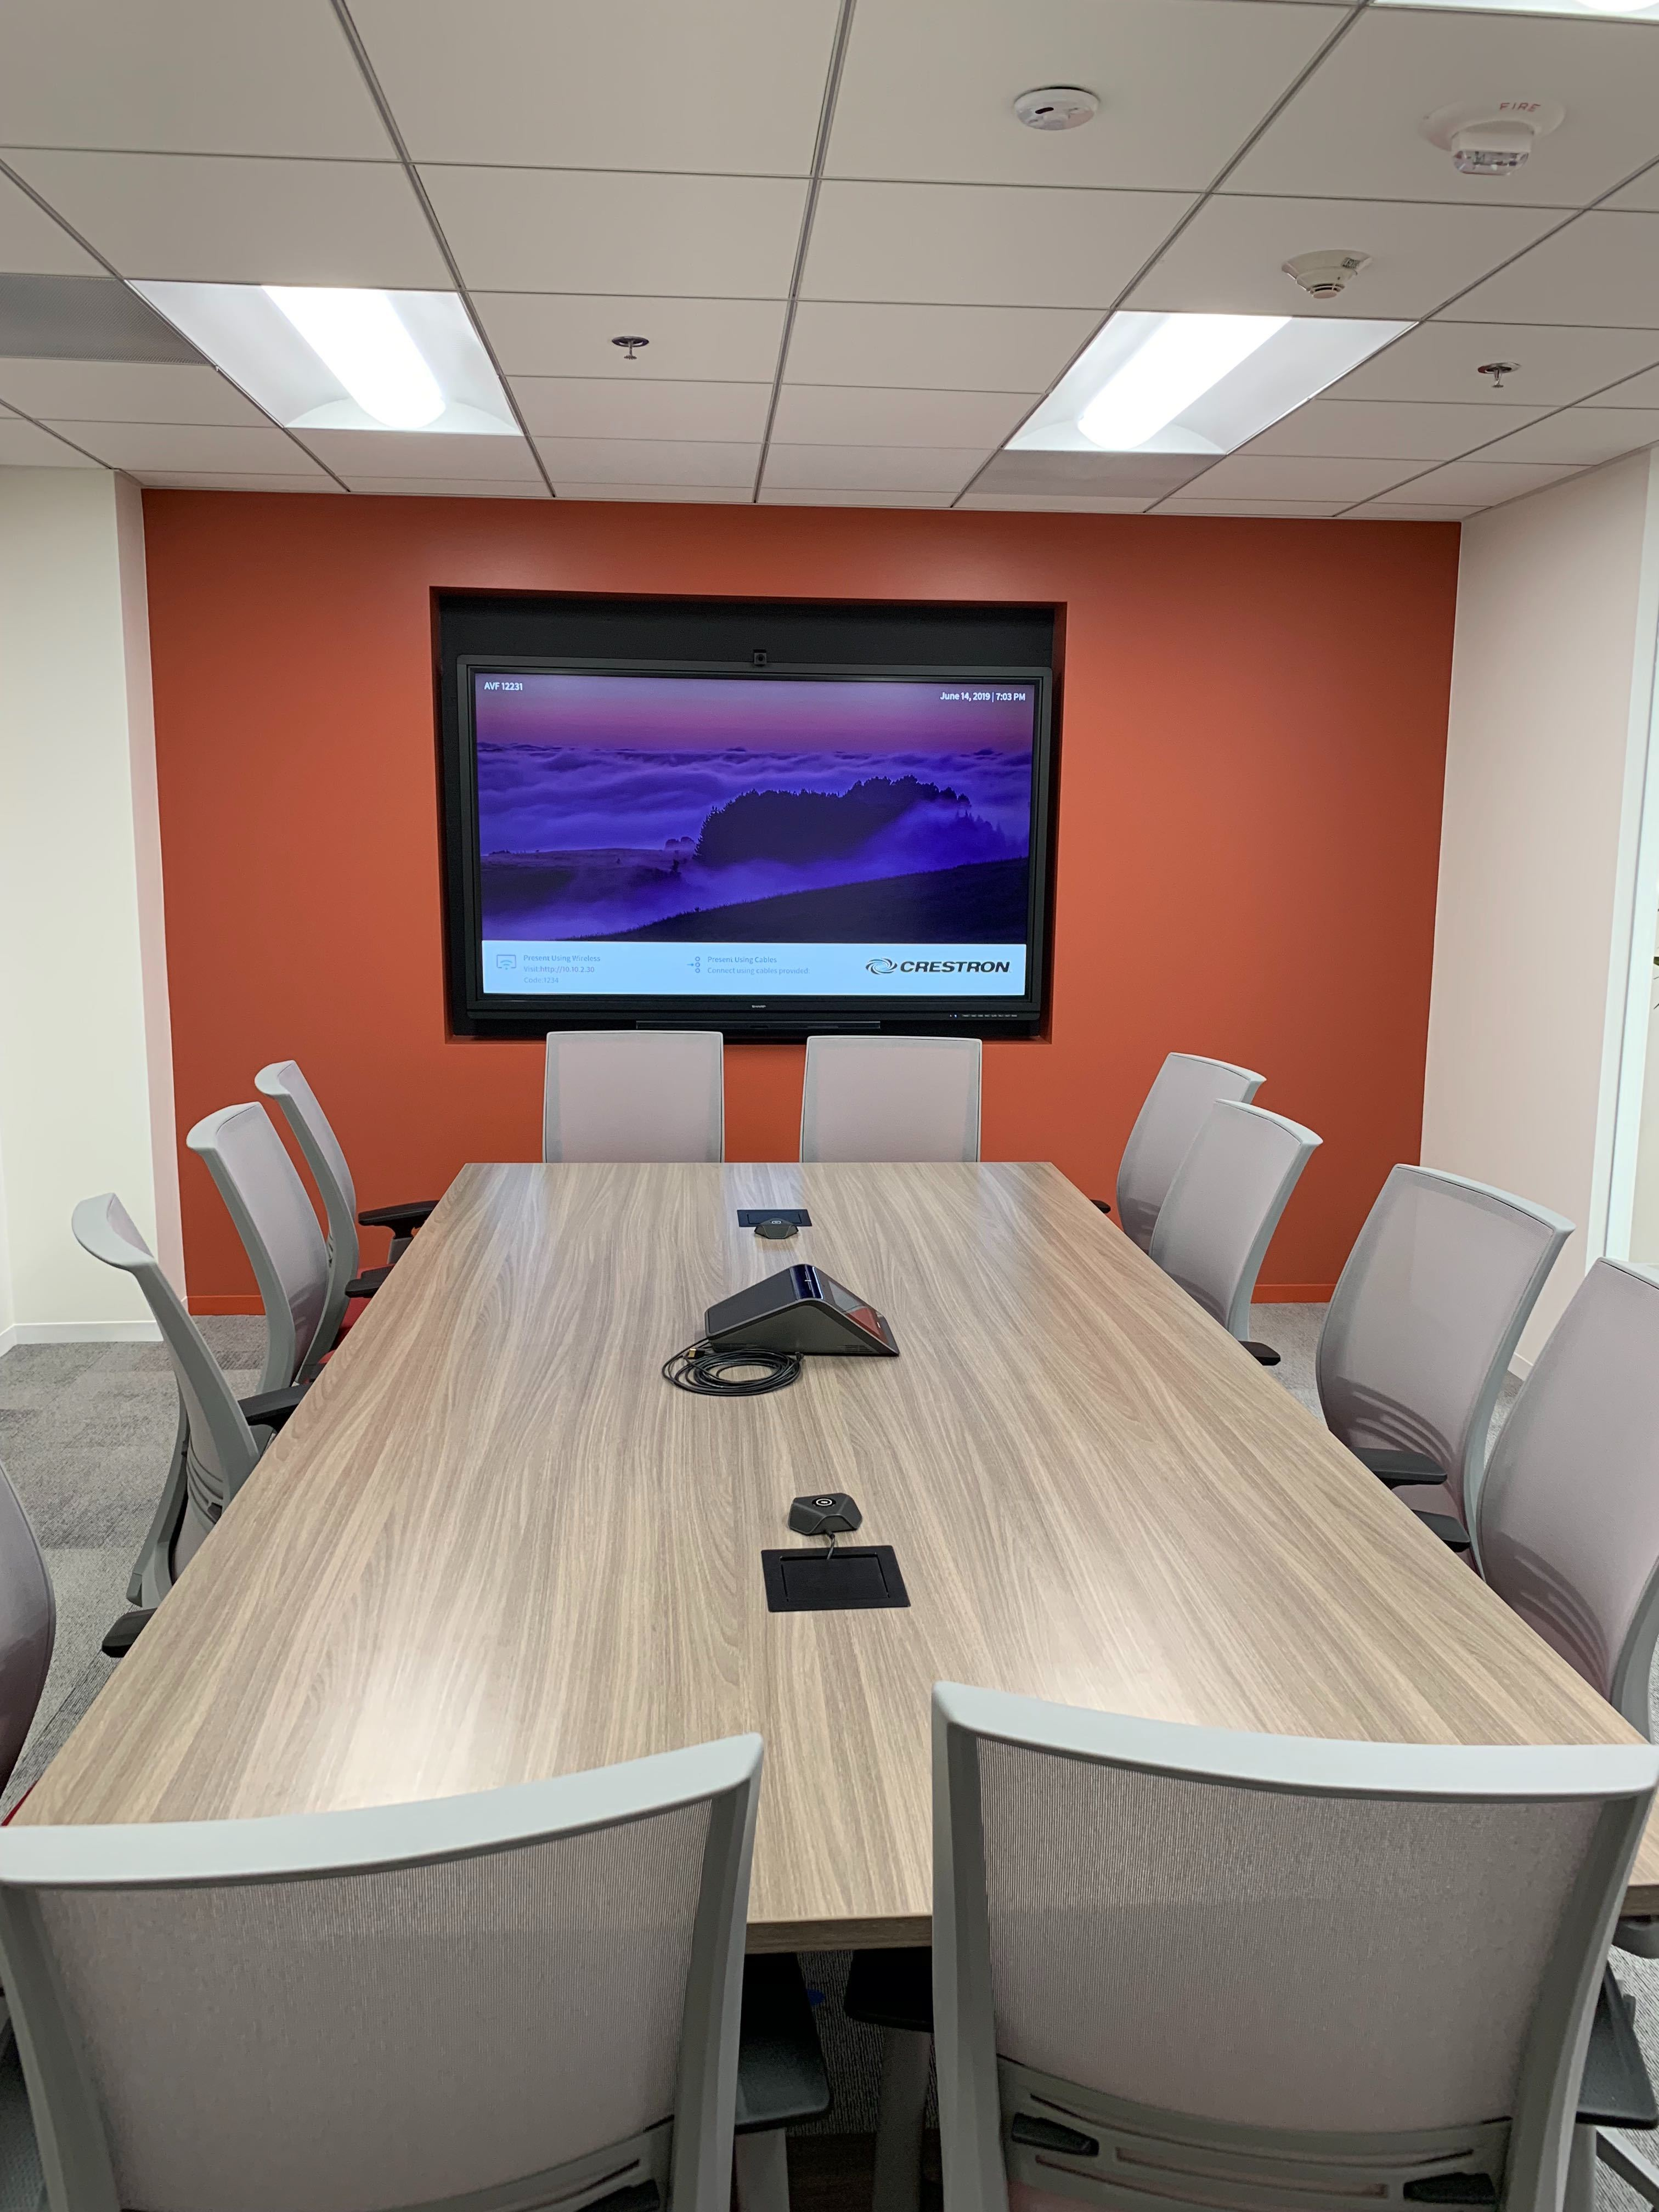 Corporate Images of Conference Room